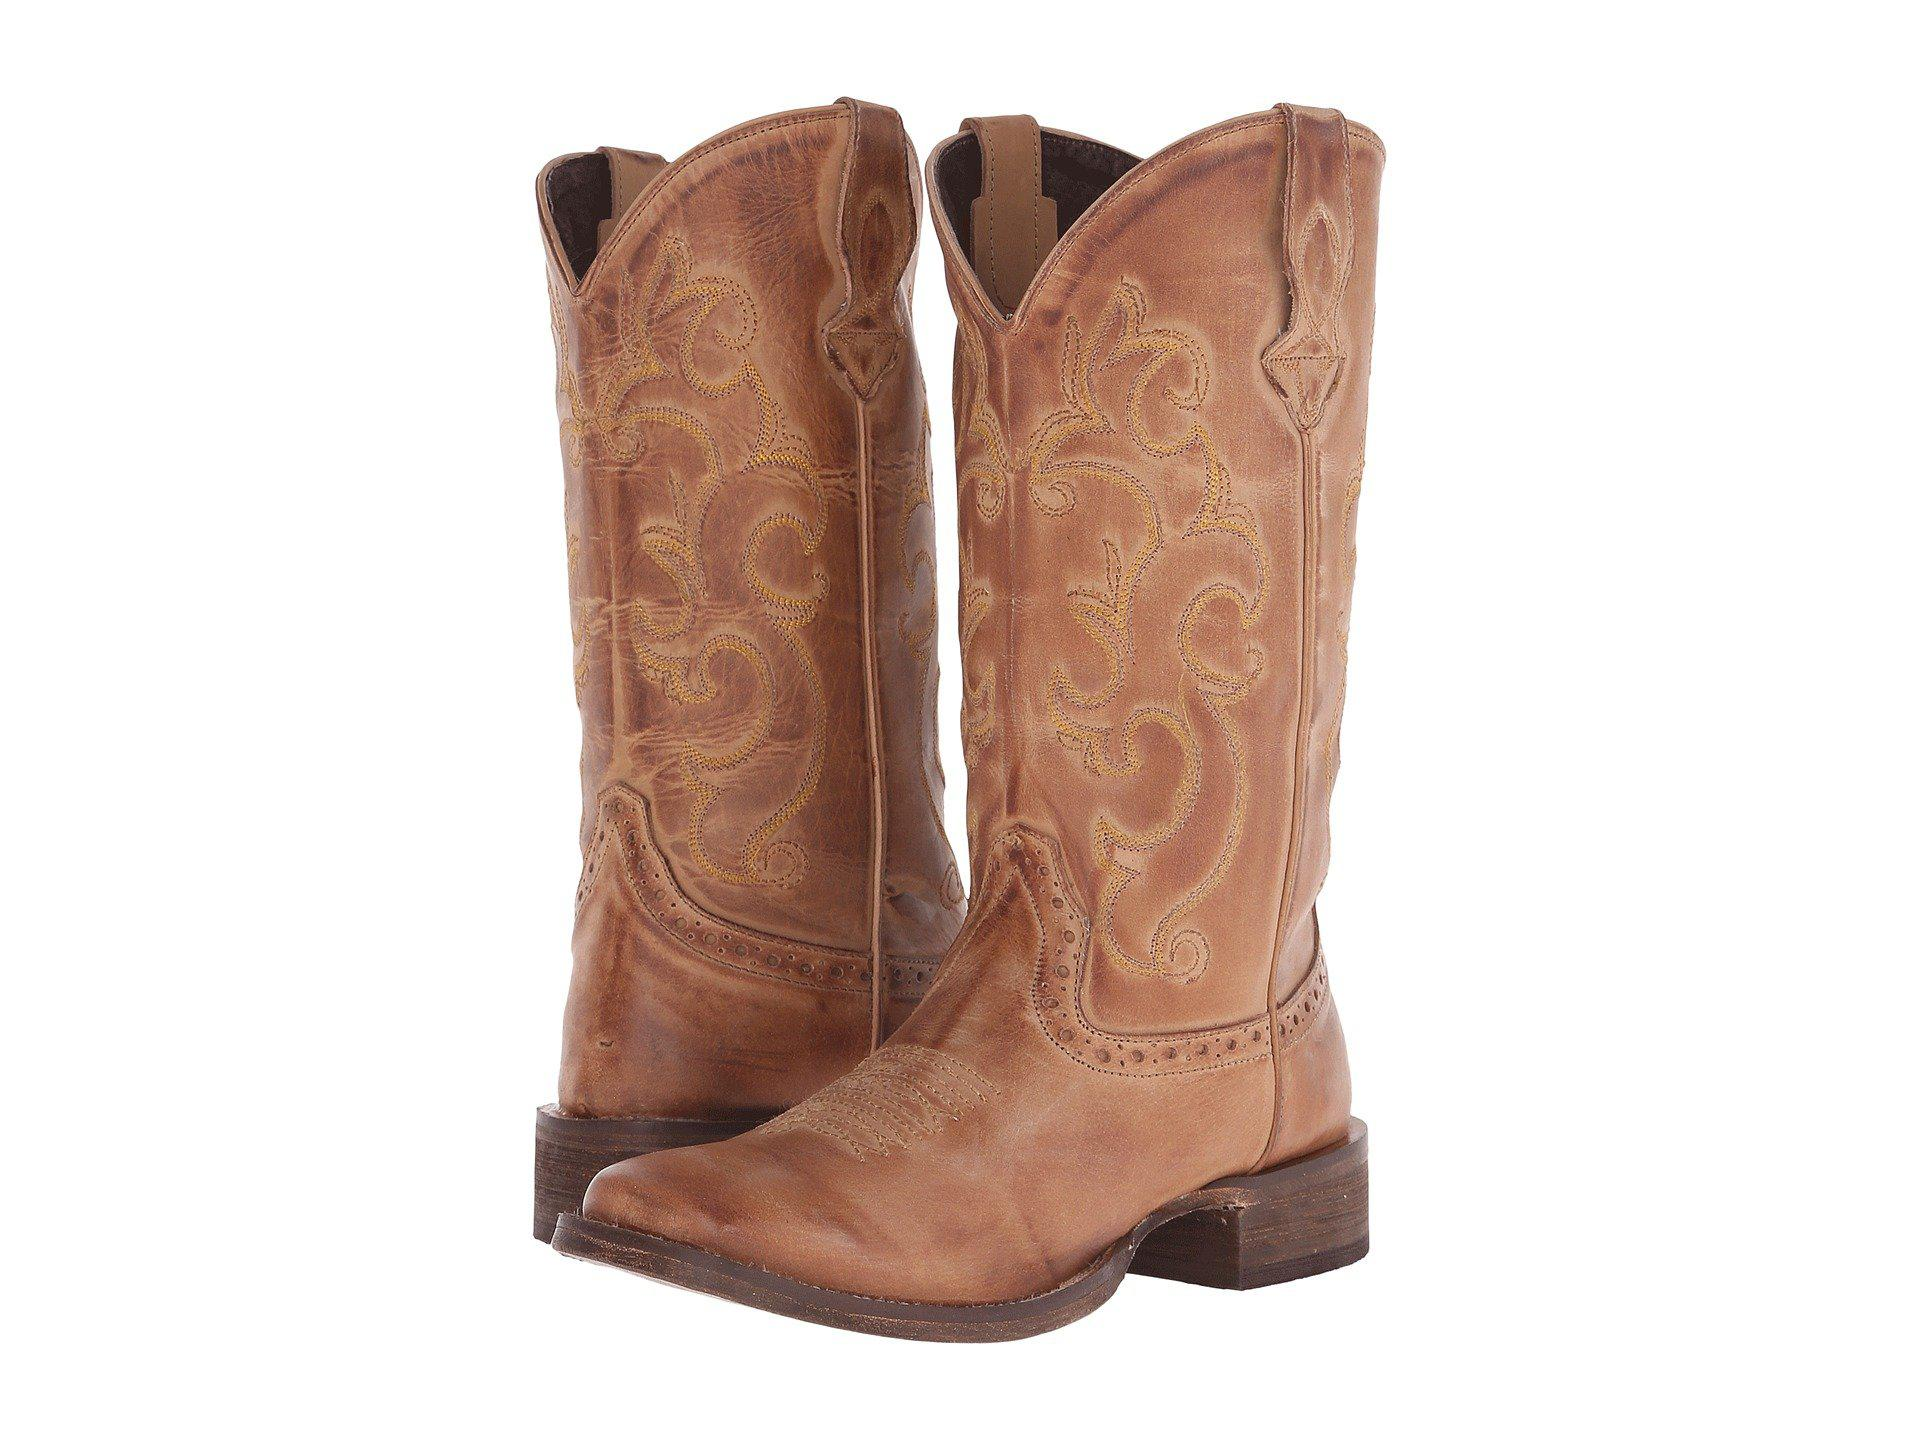 750b7efa41f59 Lyst - Roper Classic Cowgirl (brown) Cowboy Boots in Brown